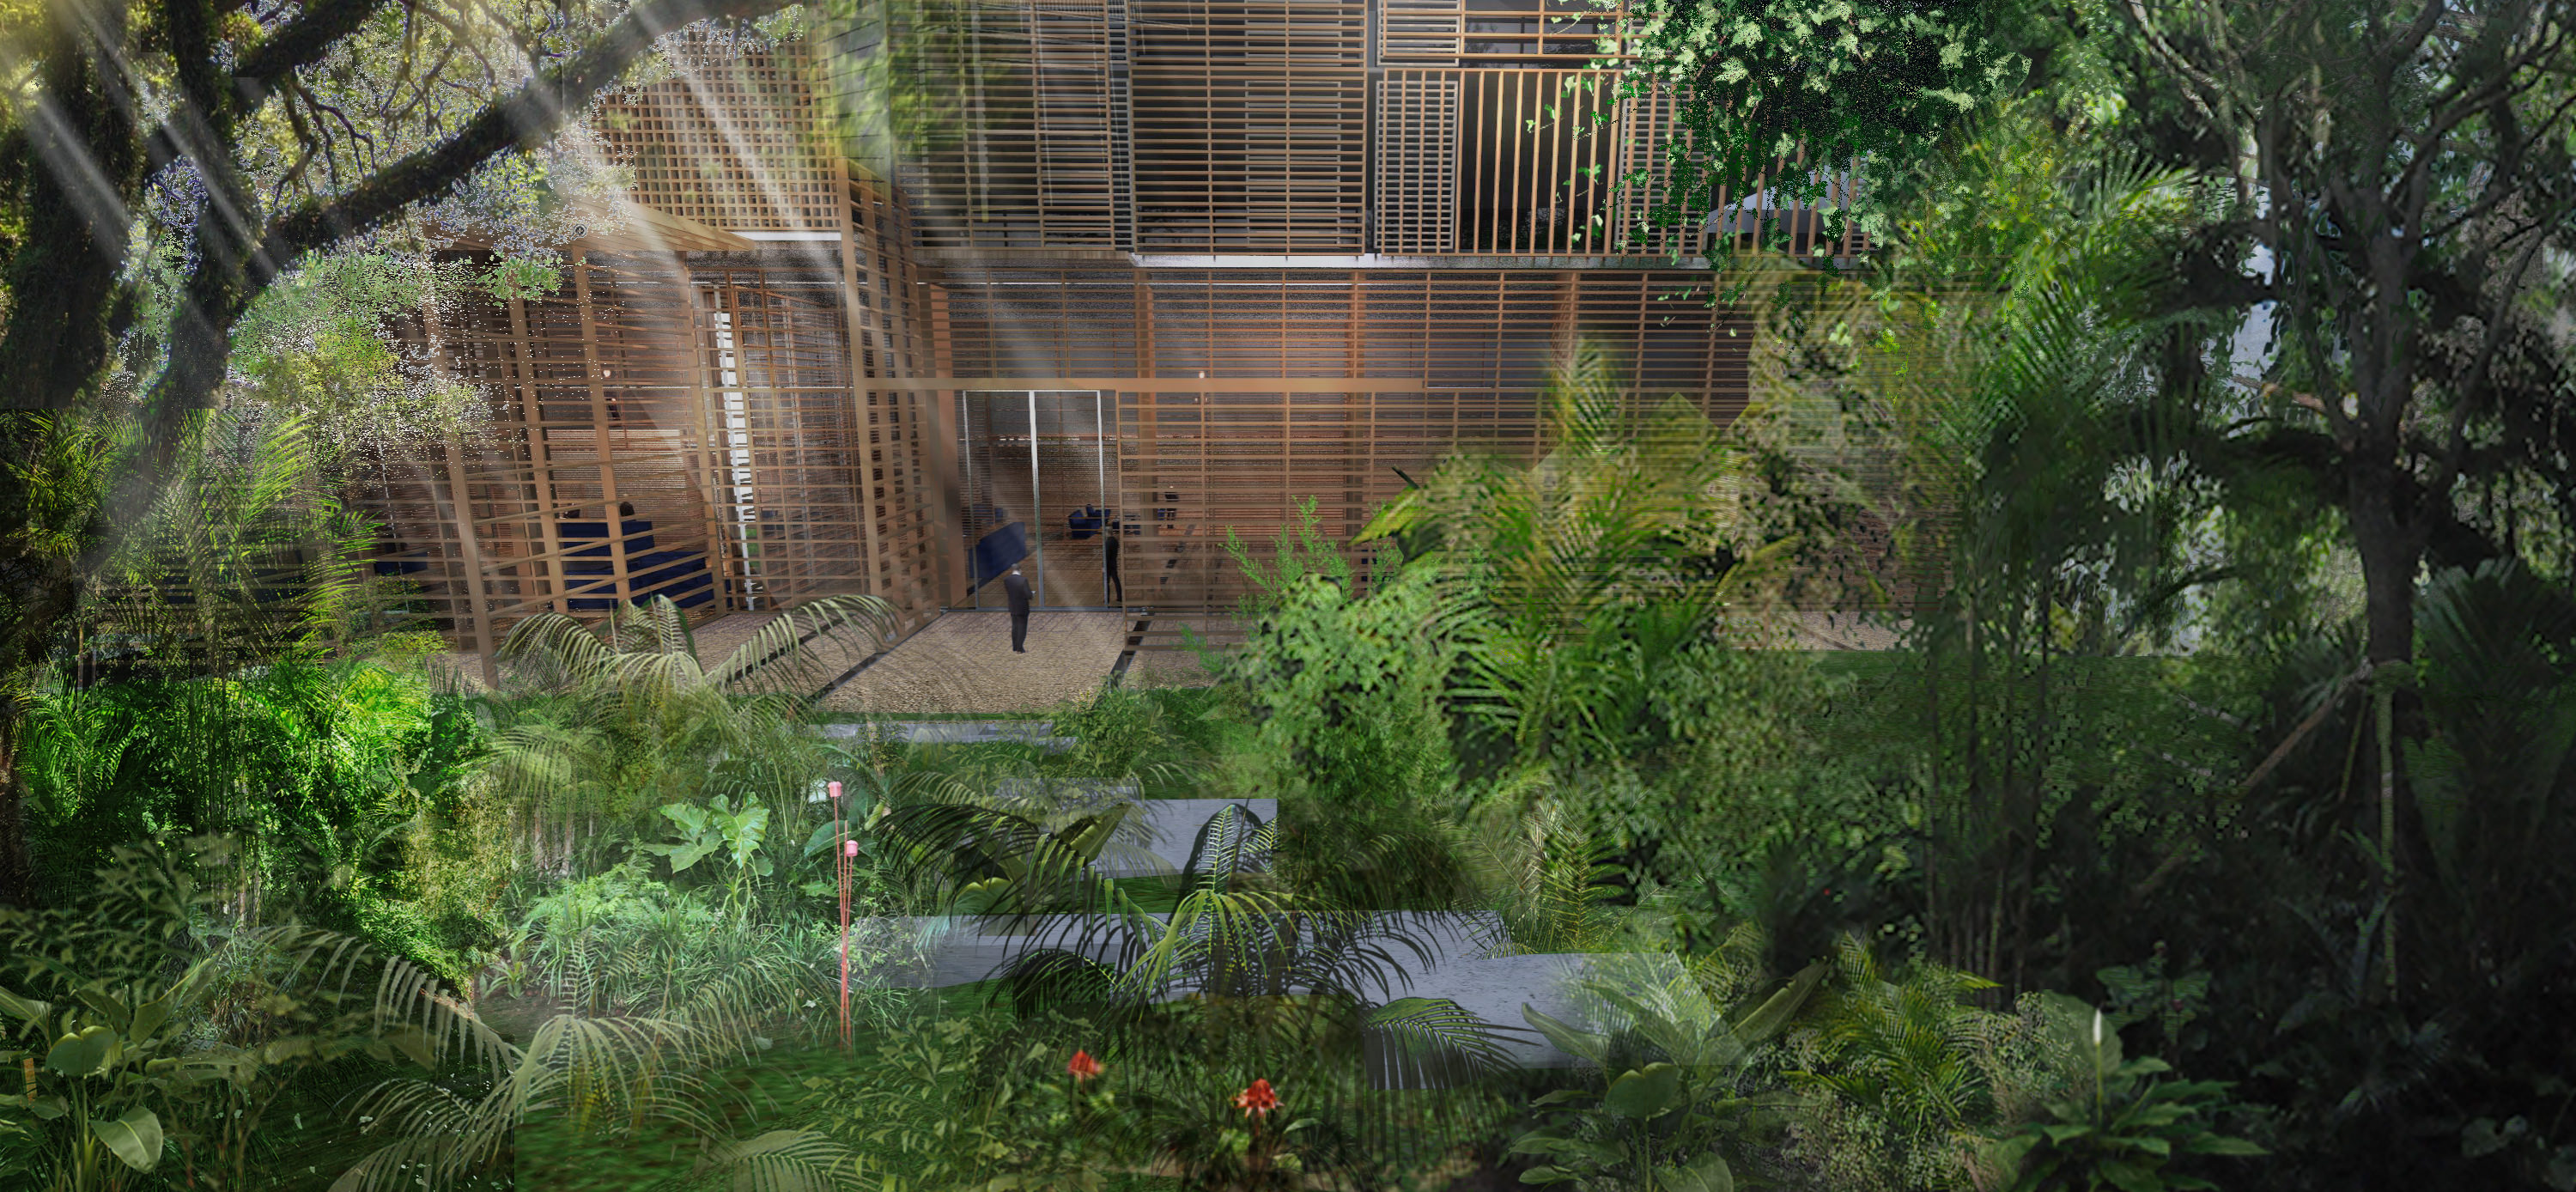 The design is for a landscape building that feeds into the lush local vegetation.